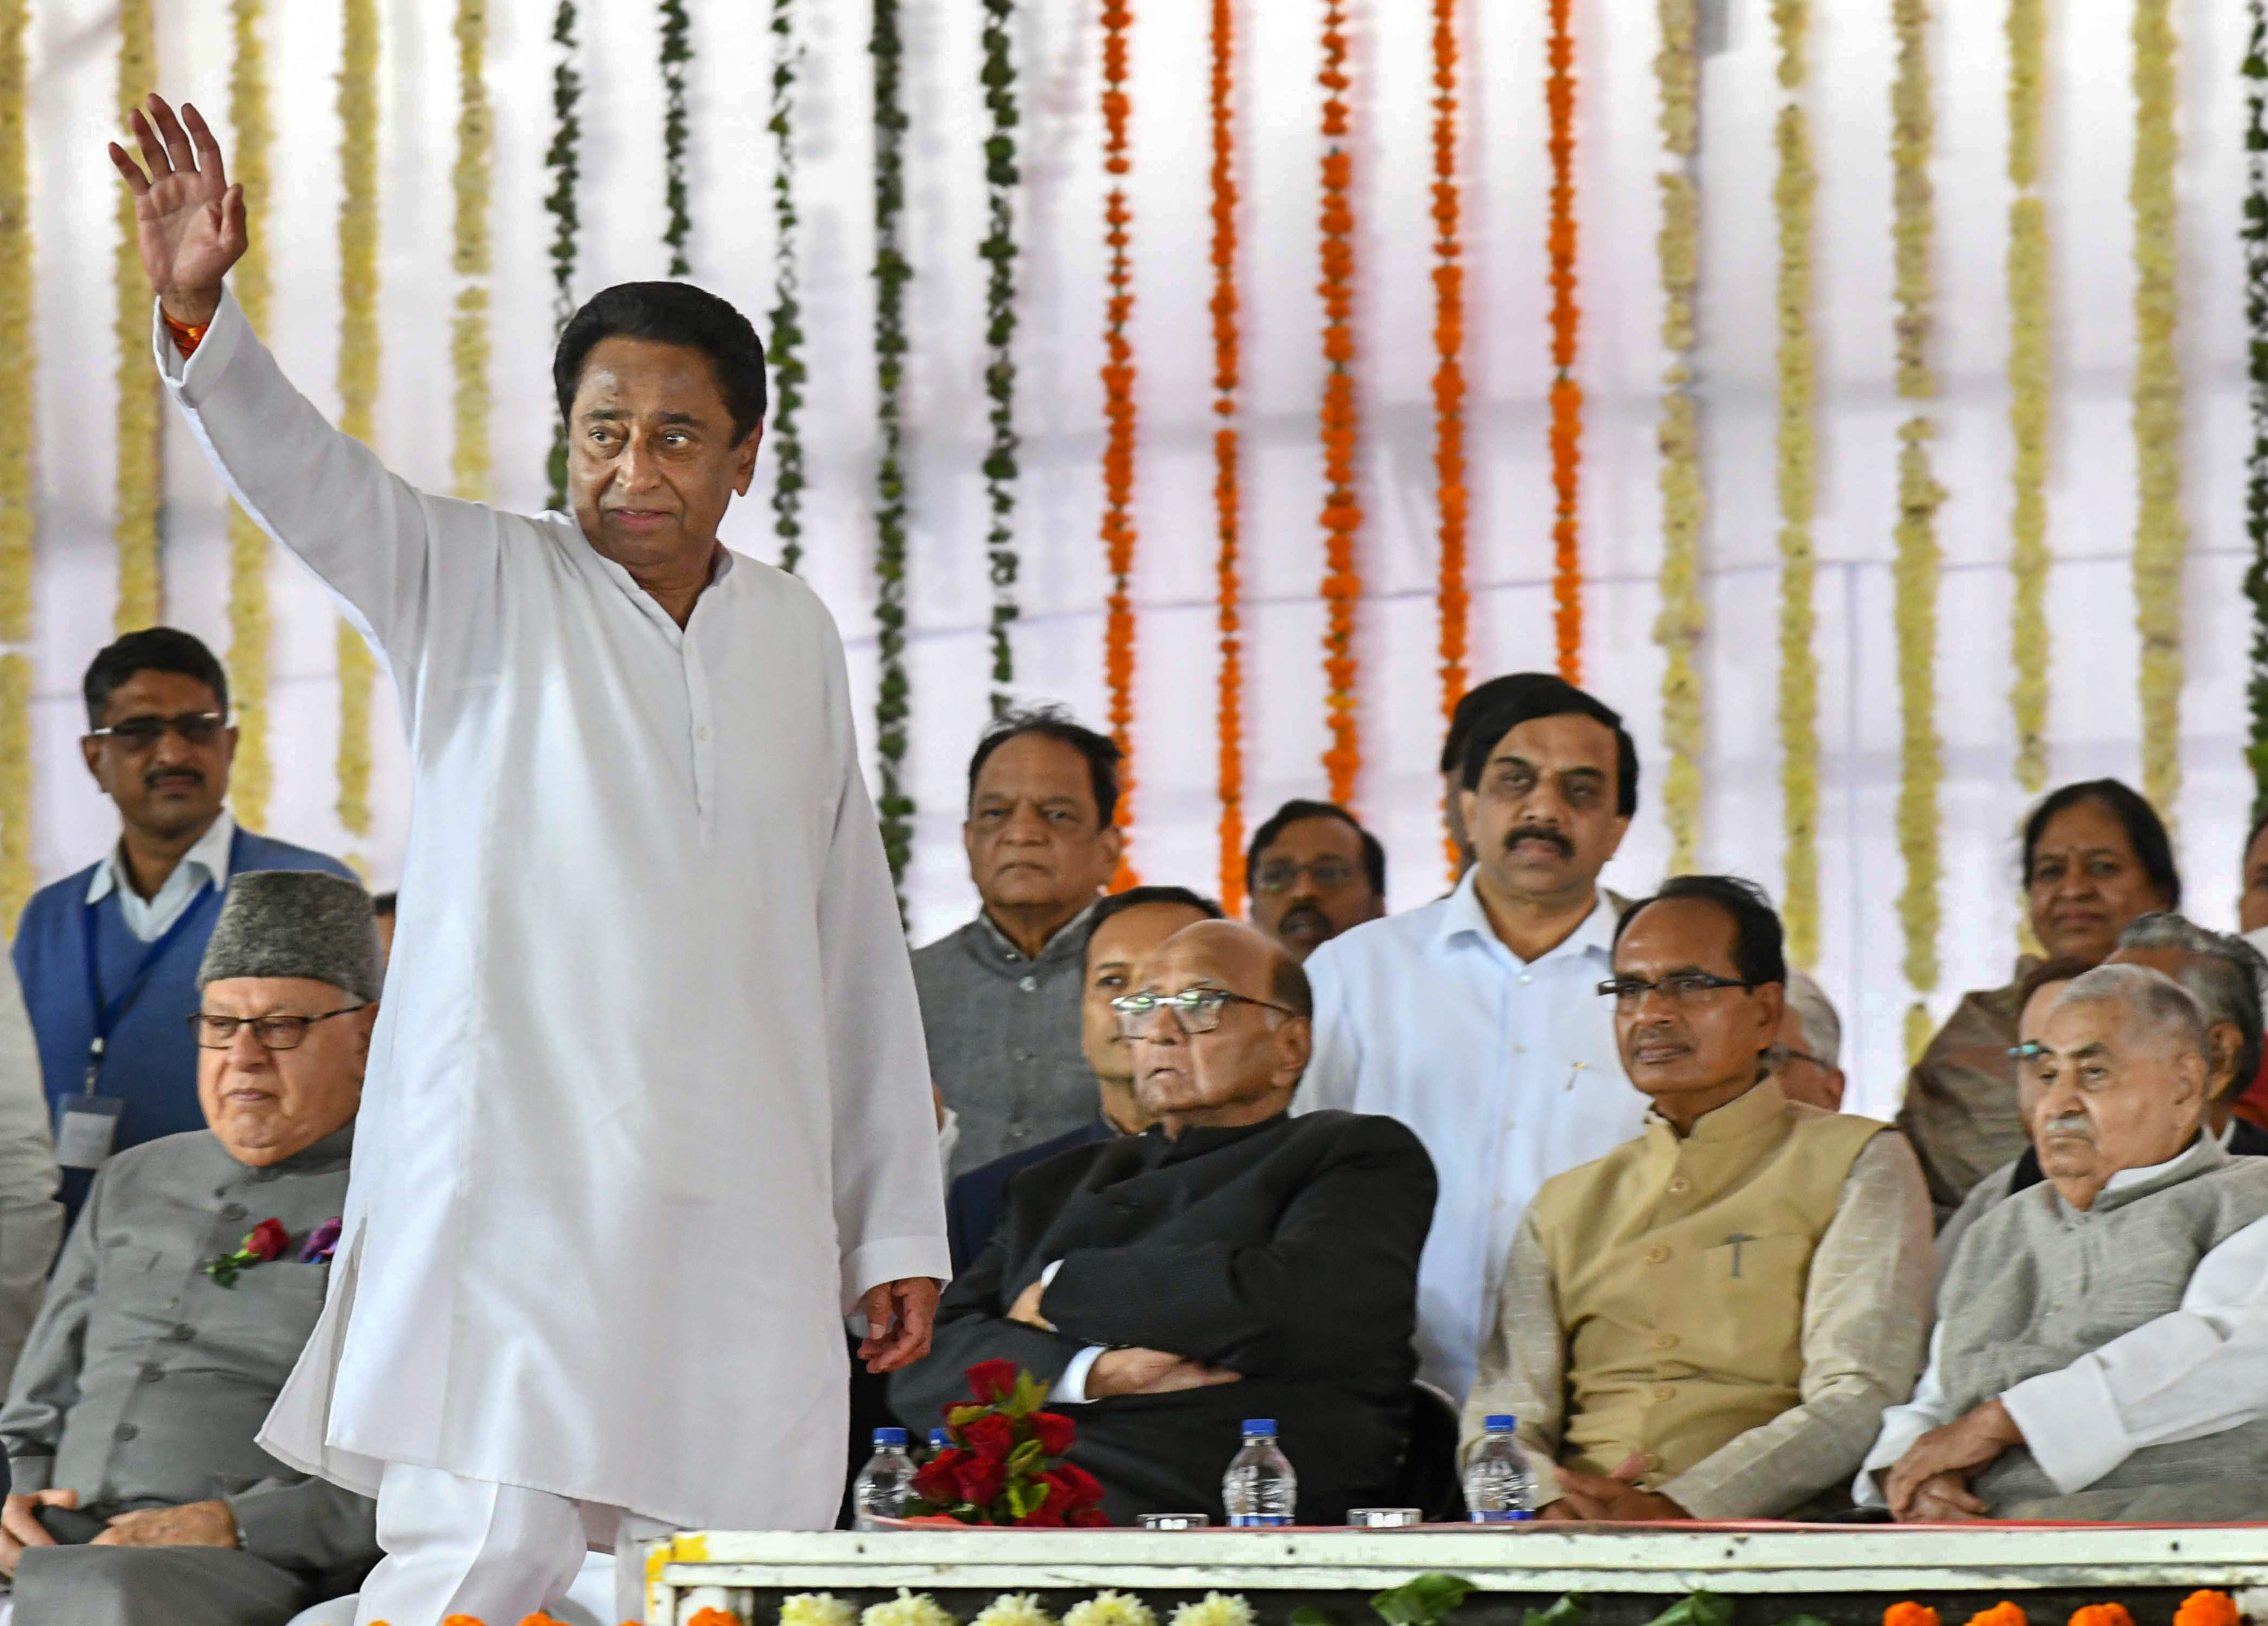 """Taking note of the """"urgency of the situation"""", a bench comprising Justice D. Y. Chandrachud and Justice Hemant Gupta issued notices to chief minister Kamal Nath, Speaker N.P. Prajapati and principal secretary of the Assembly on Tuesday and will hear the plea at 10.30am on Wednesday."""